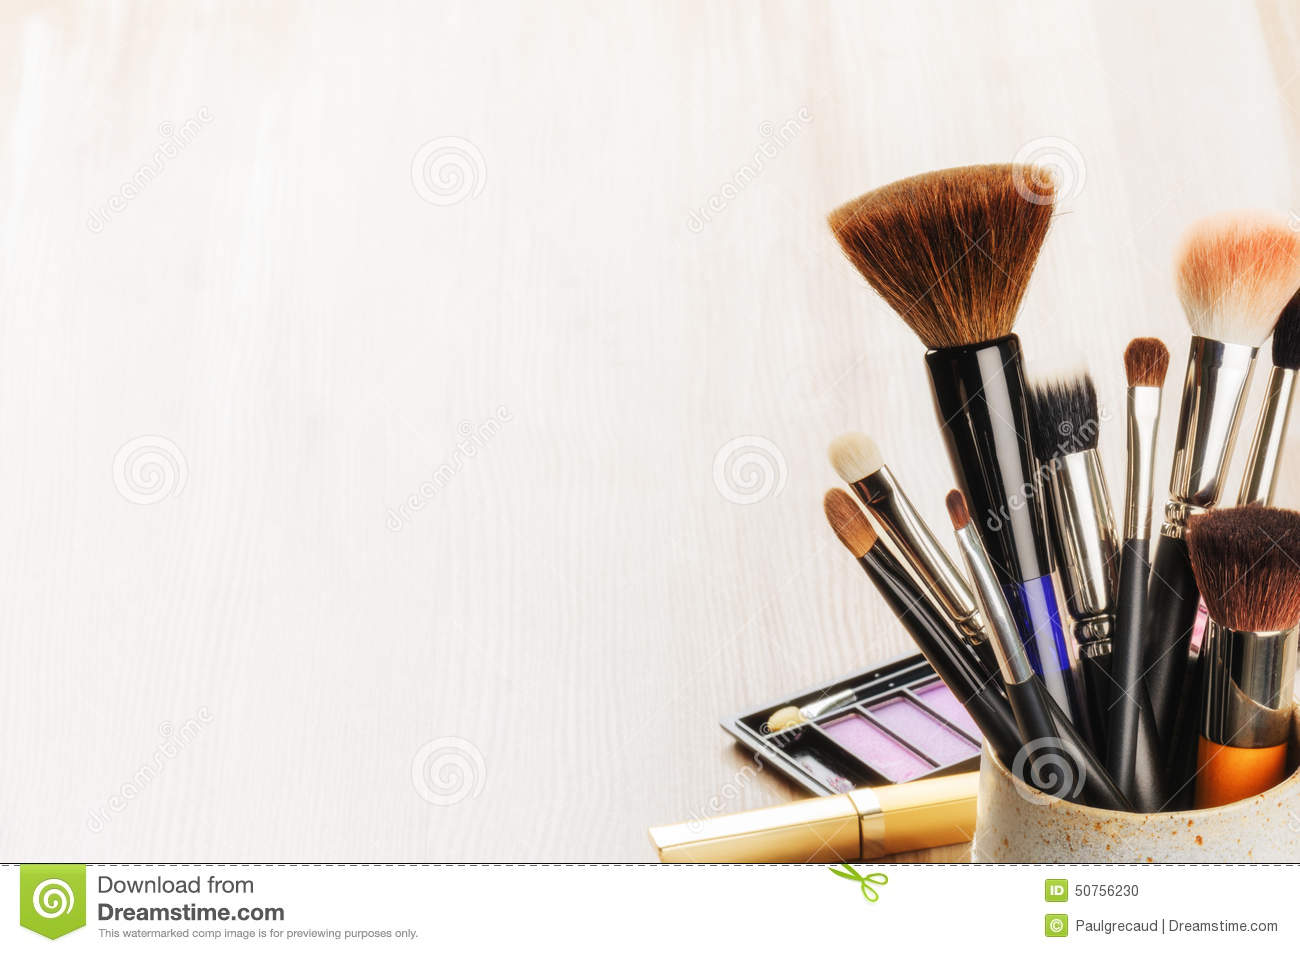 Full Hd Wallpapers High Resolution Free Download Various Makeup Brushes On Light Background Stock Photo